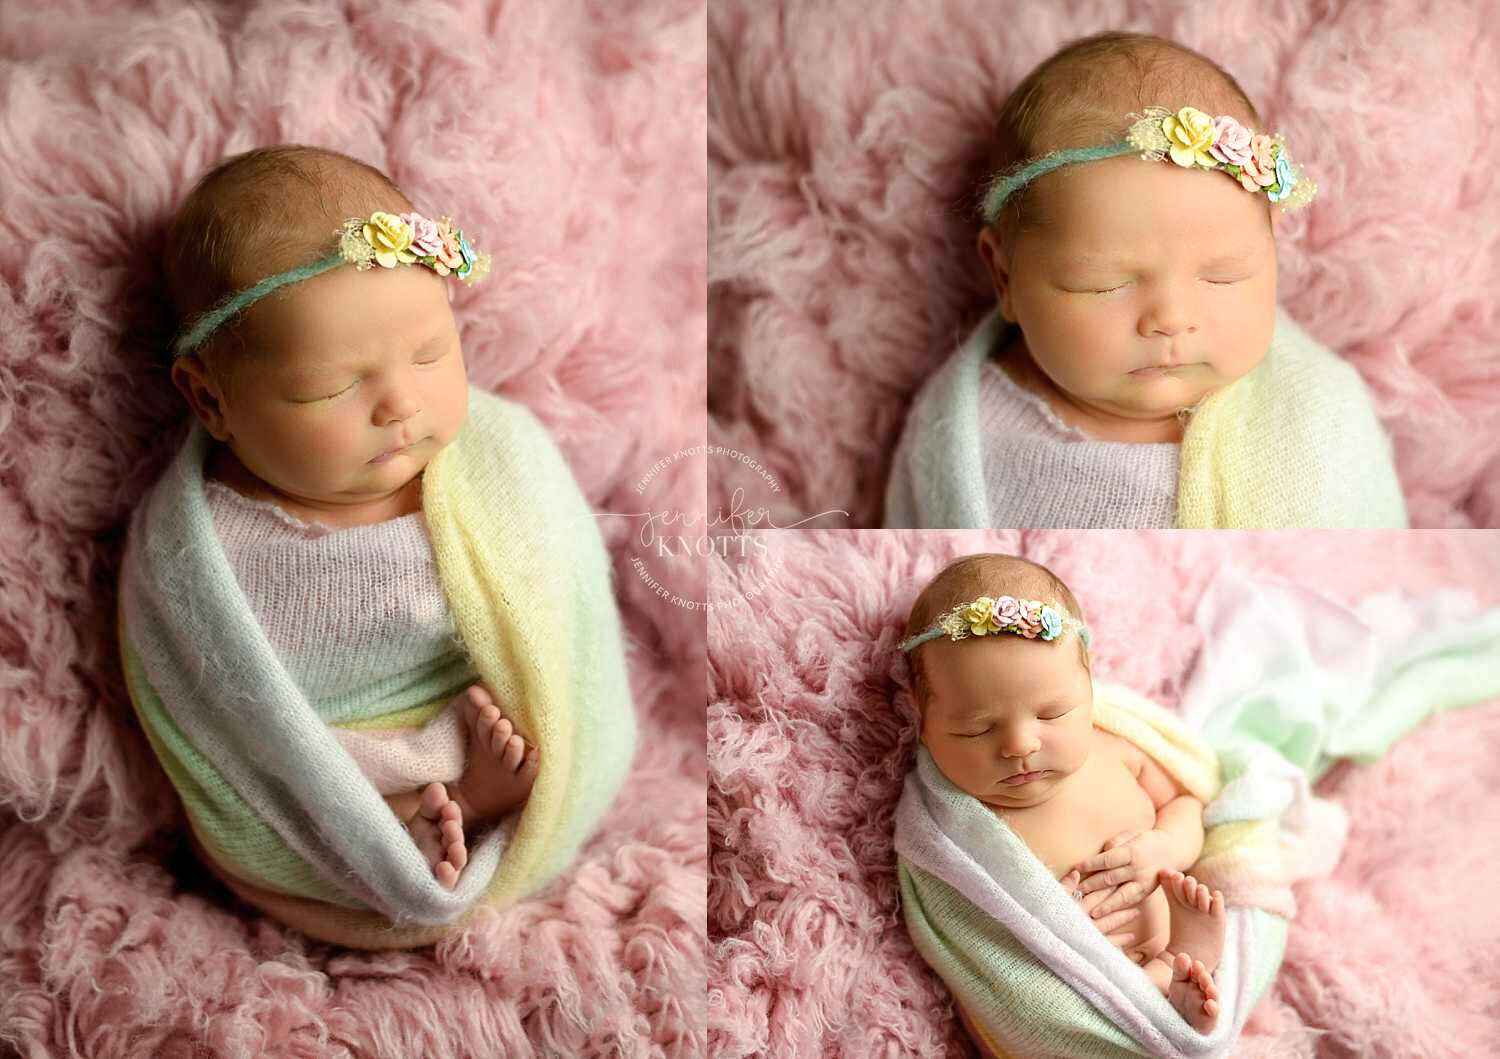 newborn girl wrapped in rainbow fabric on pink fur